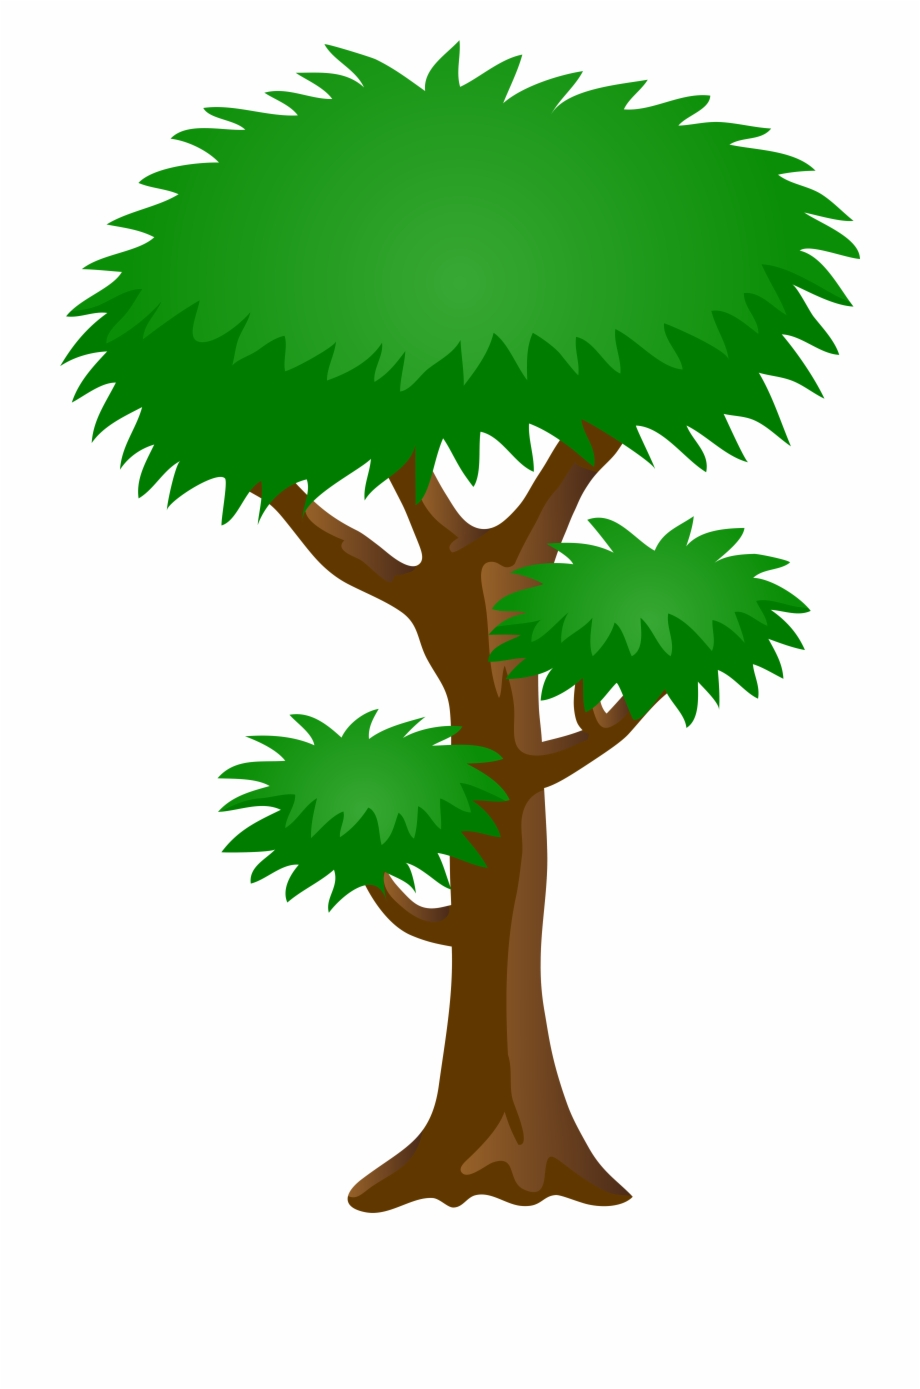 Green Tree Png Clip Art Image.